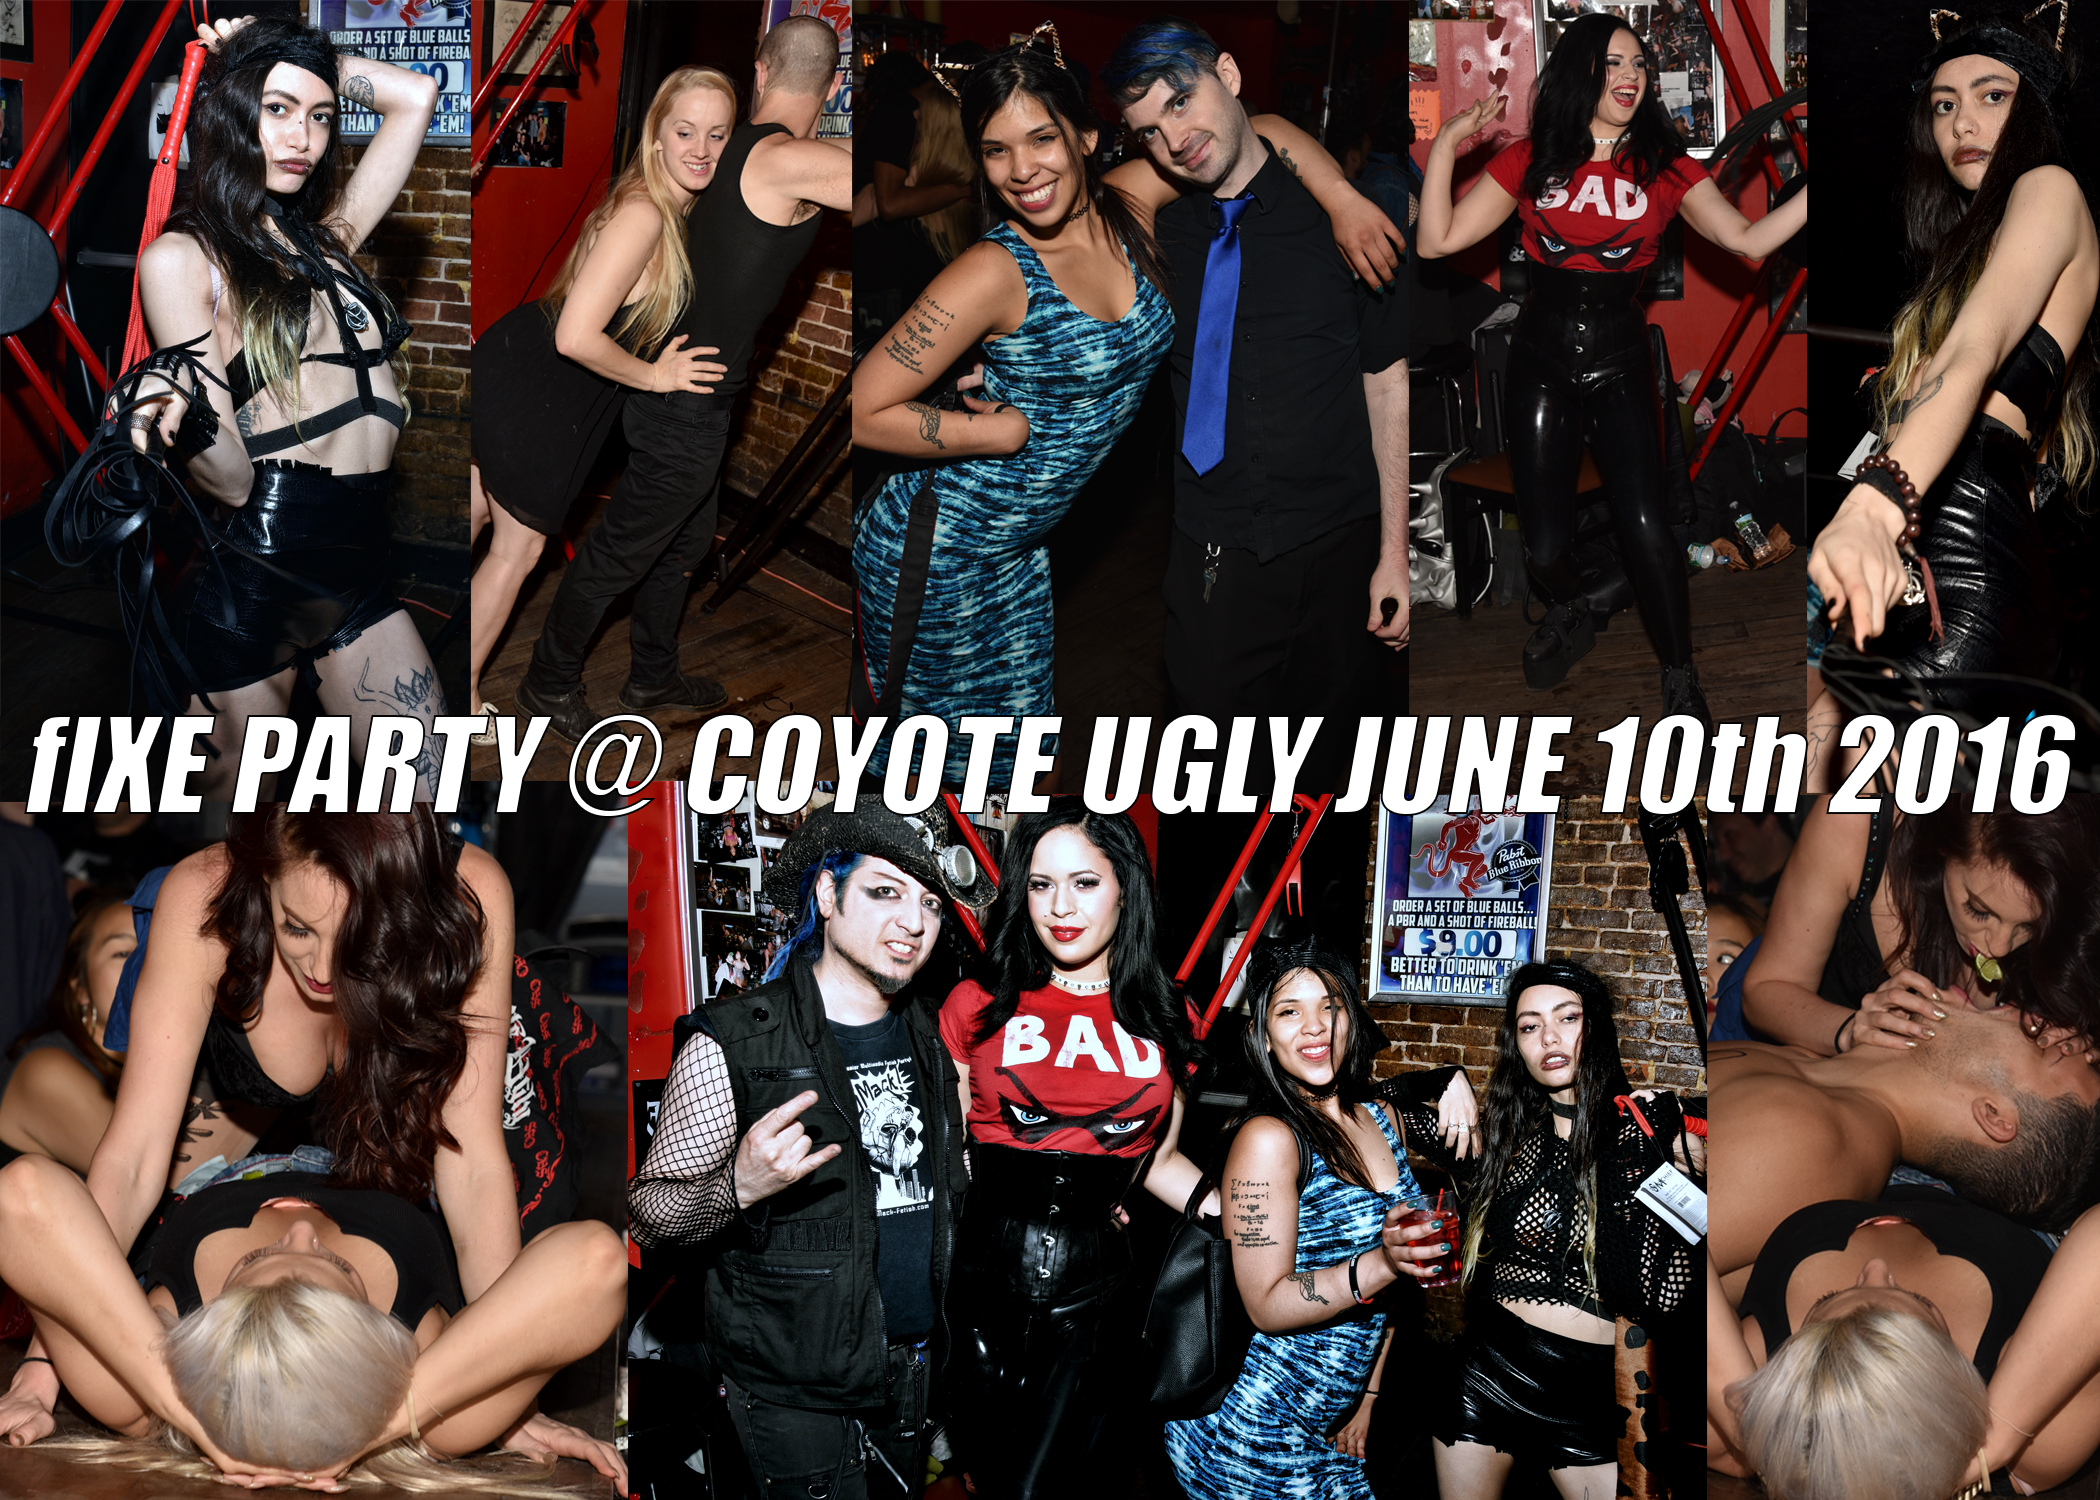 fIXE Party @ Coyote Ugly June 10th 2016 Photos